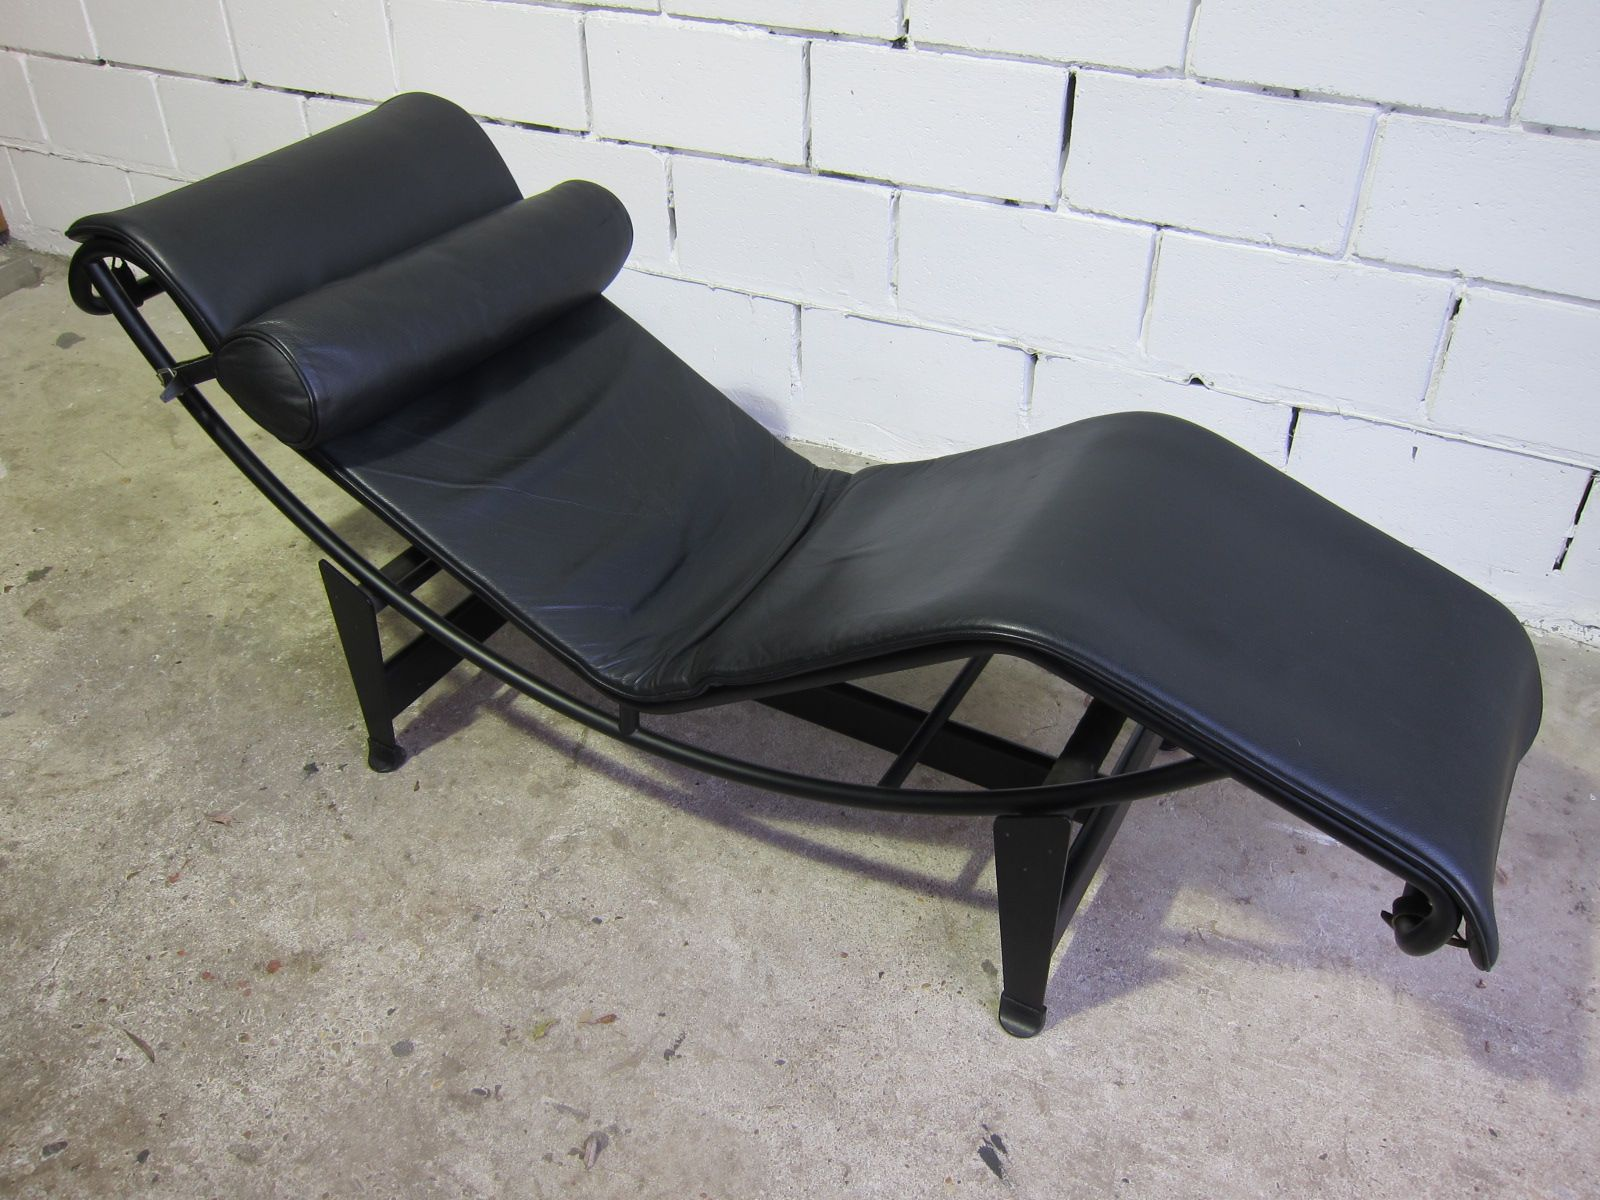 Vintage lc4 chaise lounge by le corbusier for cassina for Chaise longue le corbusier cassina